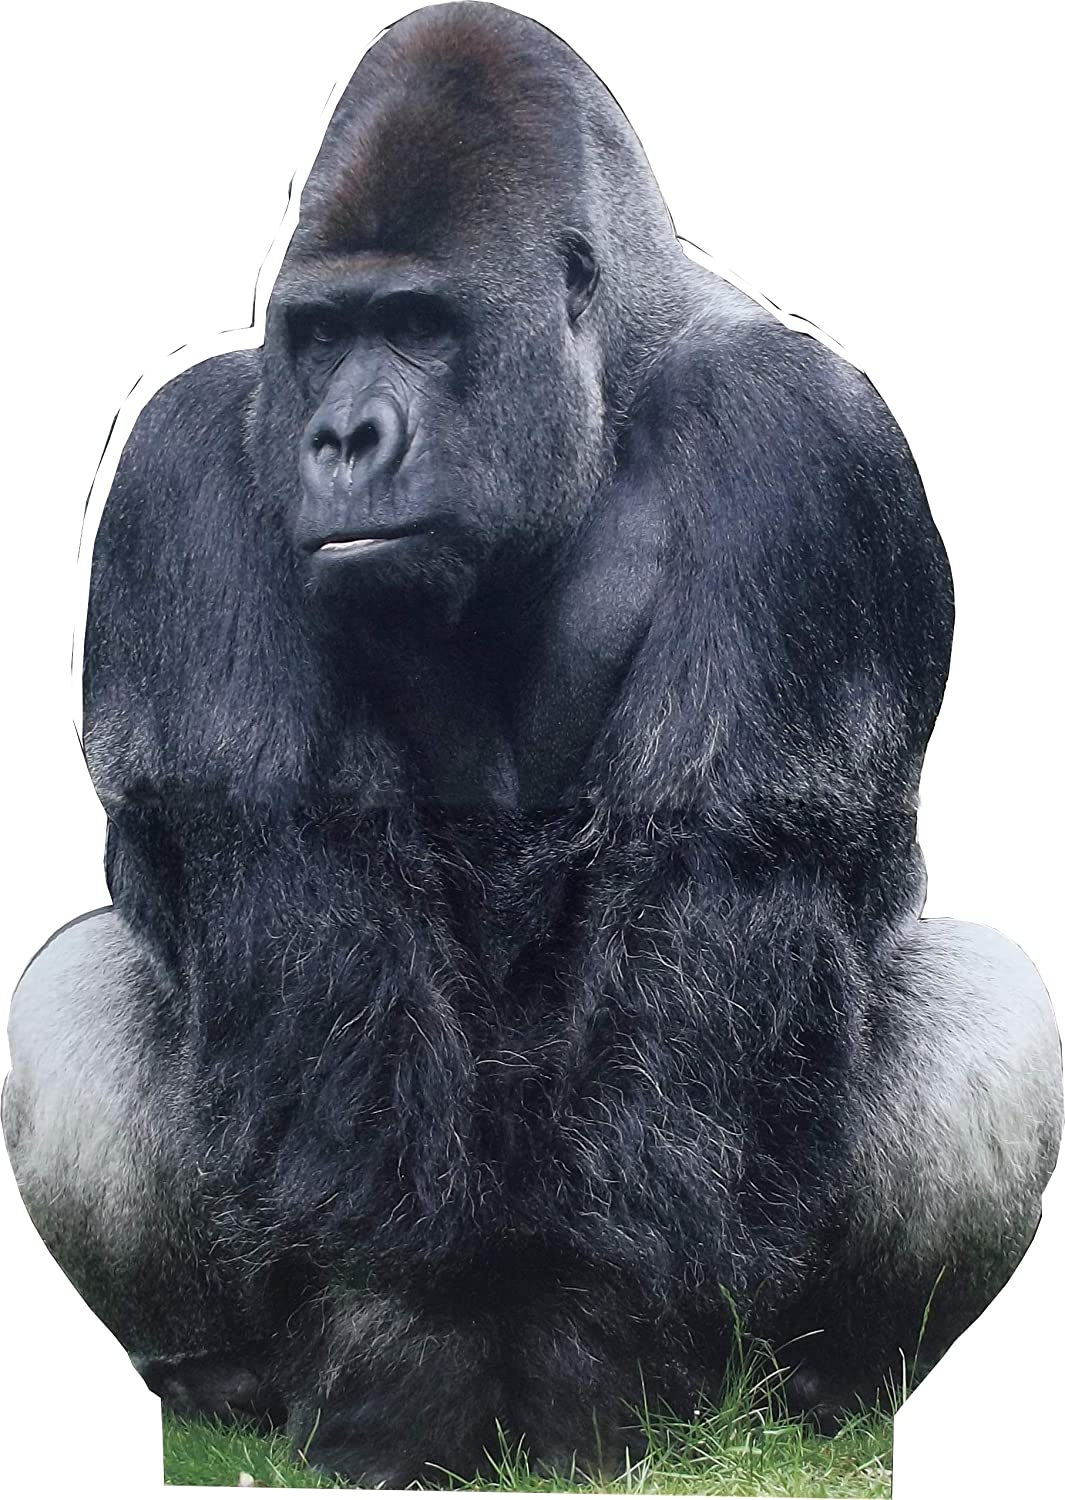 aahs!! Engraving Animal Life Size Cardboard Cutout Stand Up | Standee Picture Poster Photo Print (Gorilla)